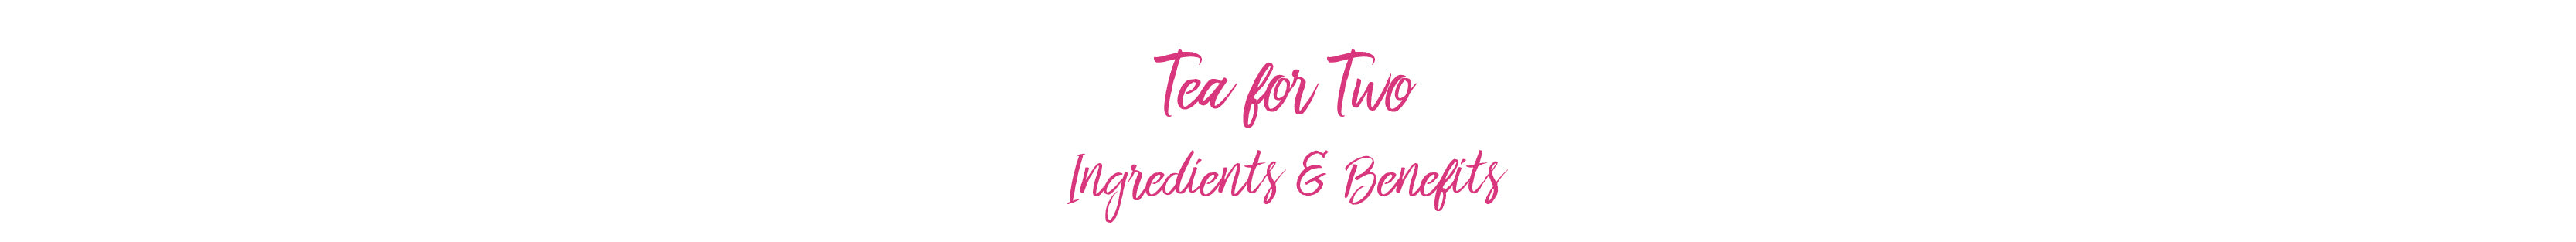 Tea for Two Ingredients & Benefits